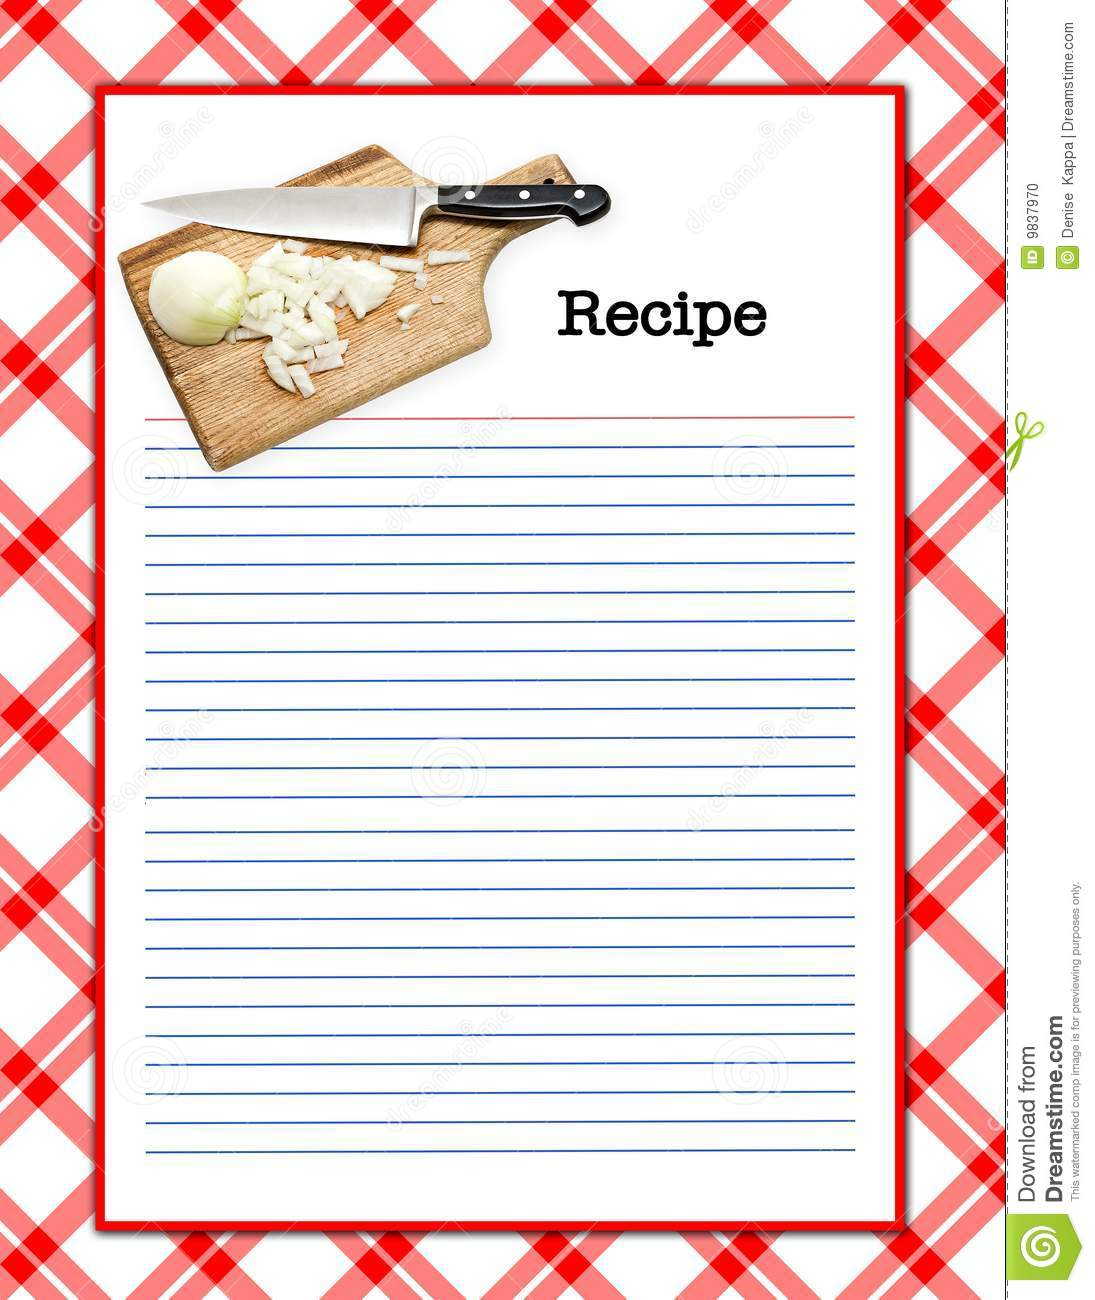 Open church door clipart - Red White Recipe Layout Matching Background Menu Page Recipe